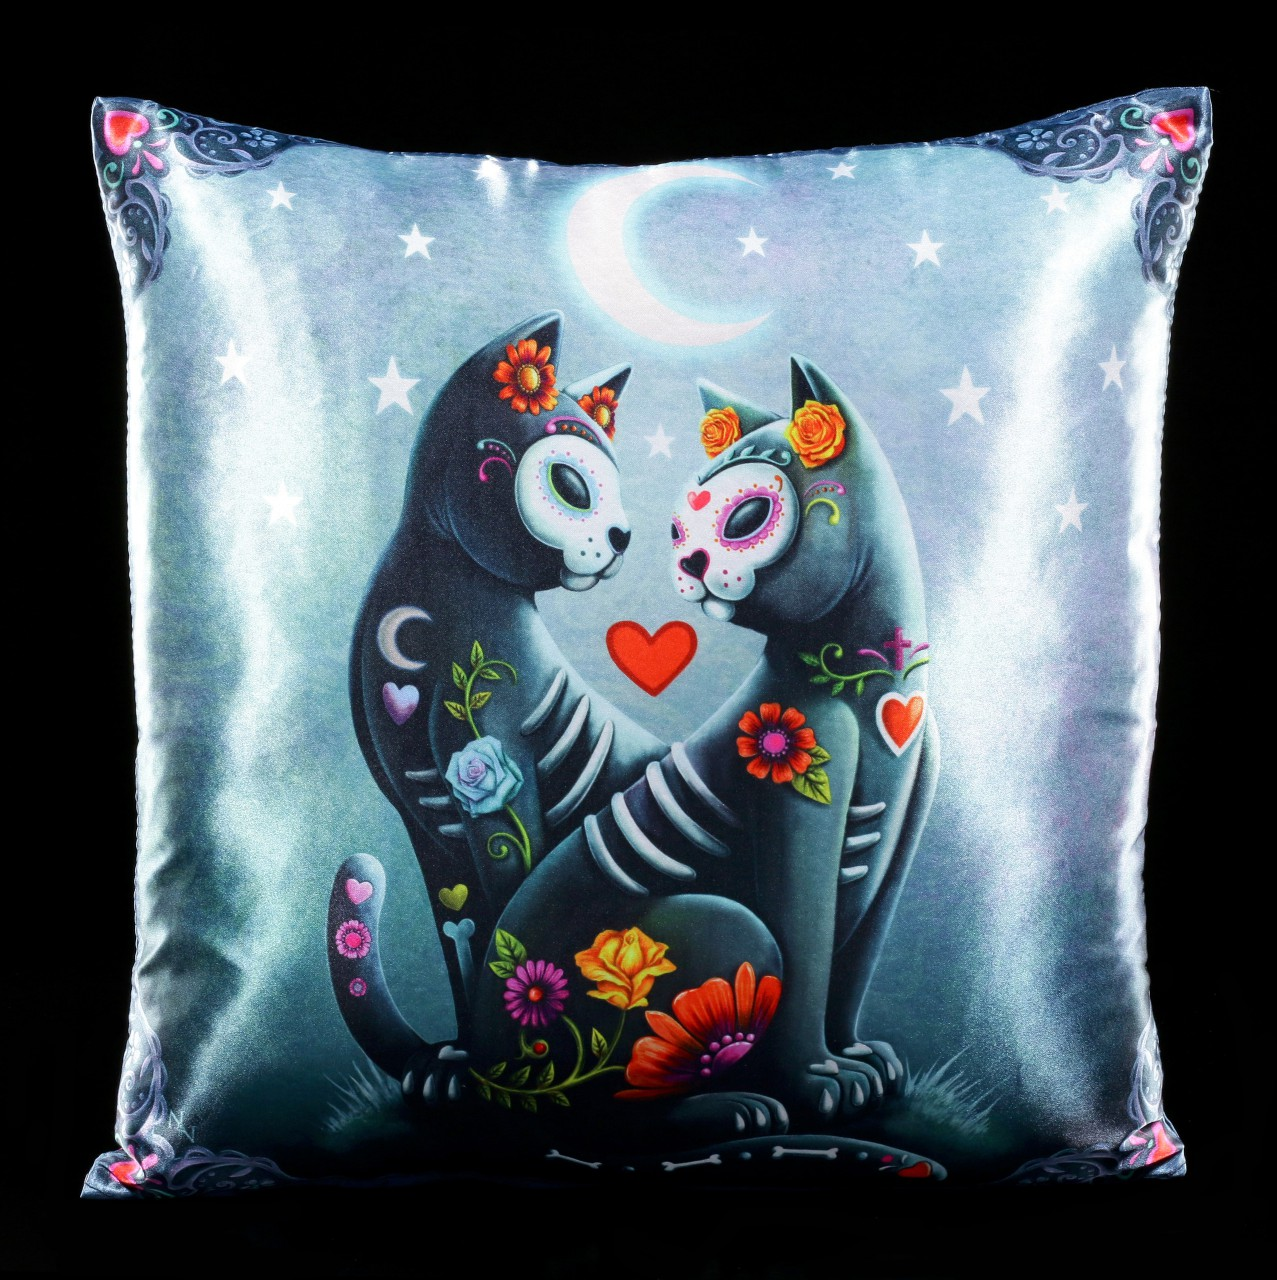 Cushion with Cats - Starry Night